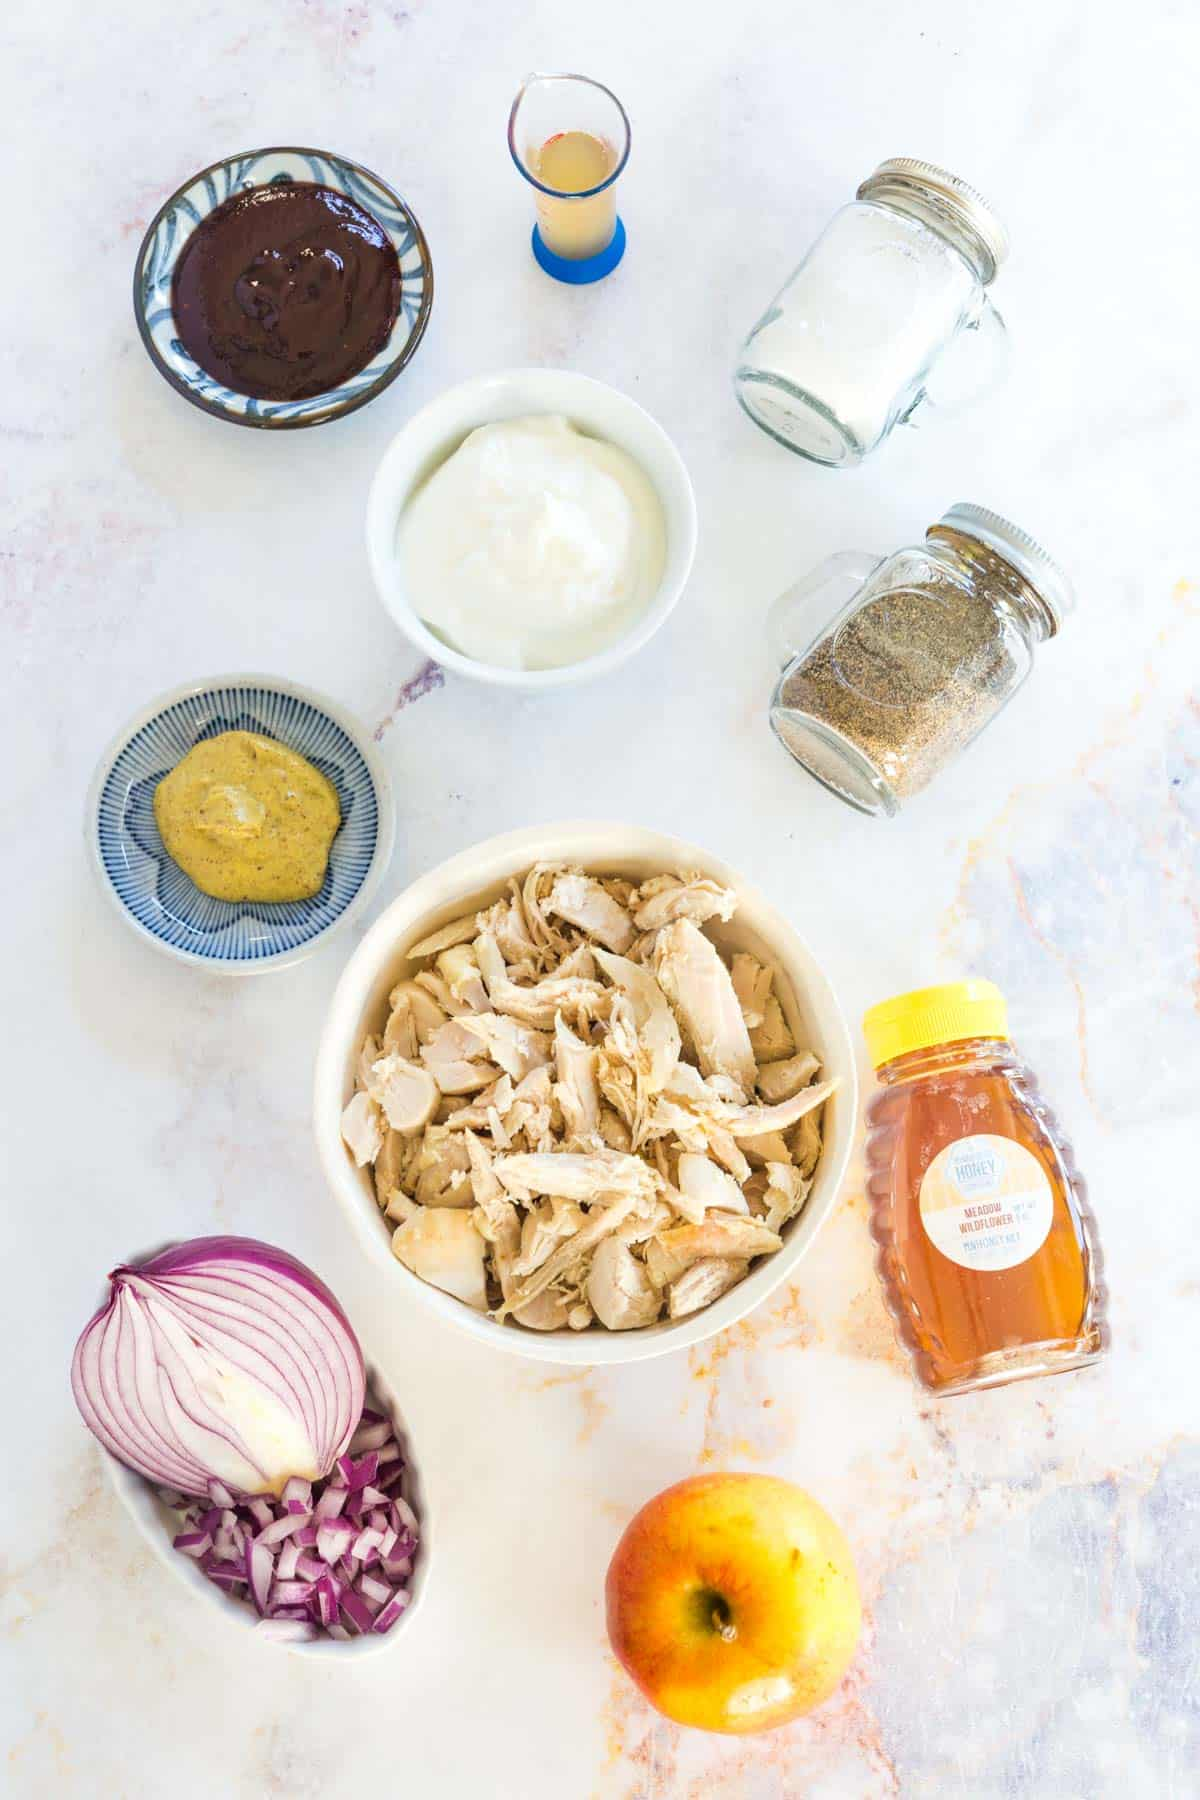 bowls of cooked chicken, Greek yogurt, mustard, barbecue sauce, apple cider vinegar, and red onion, an apple, a bottle of honey, and salt and pepper shakers